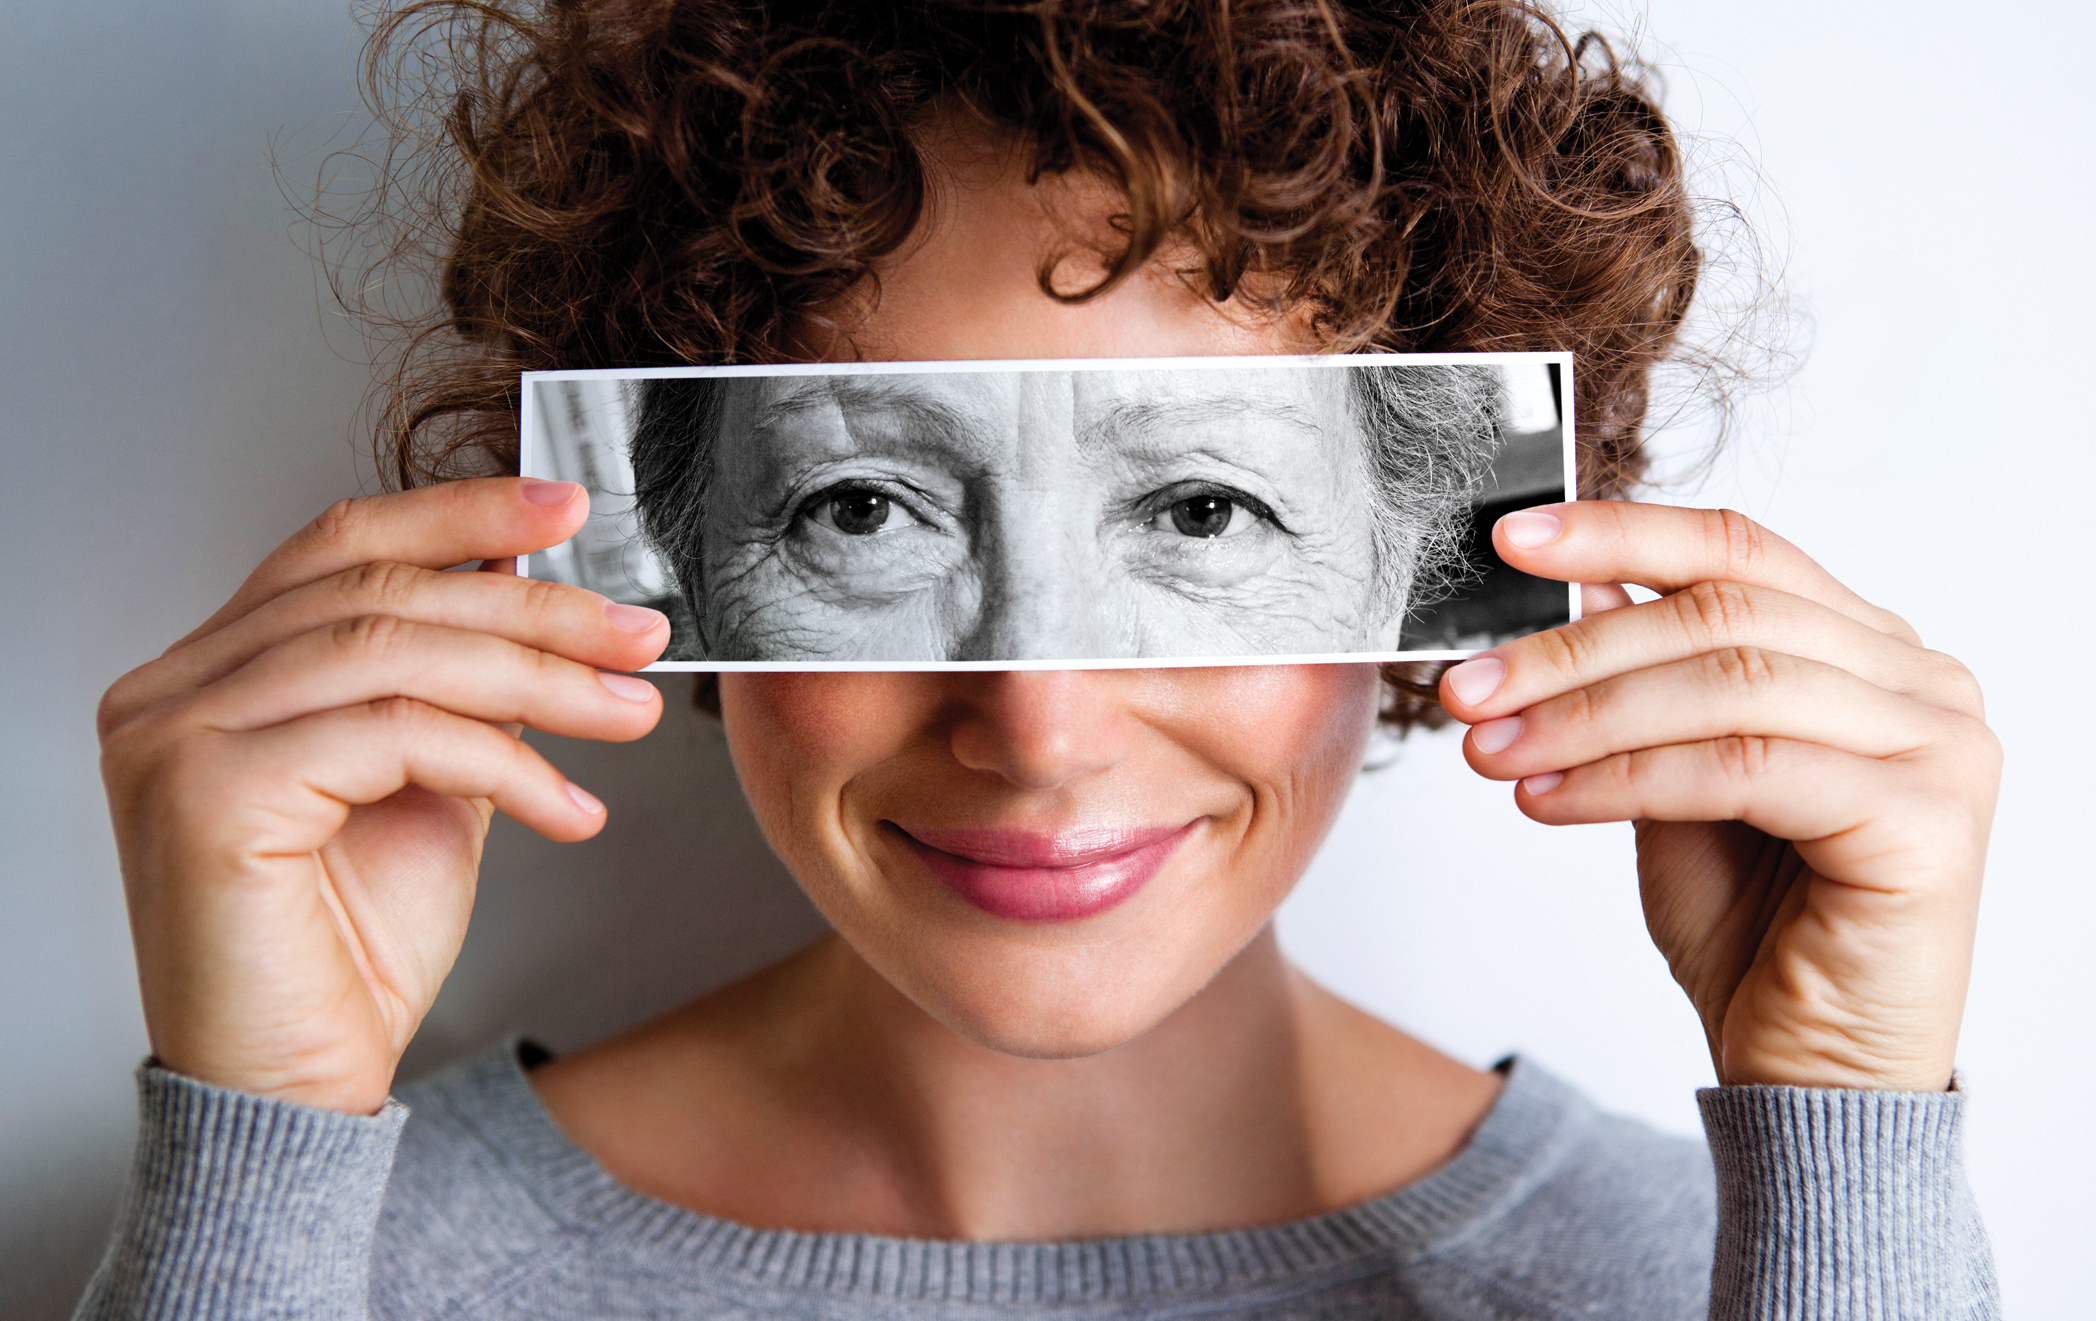 Woman with photo of elderly woman's eyes on hers'